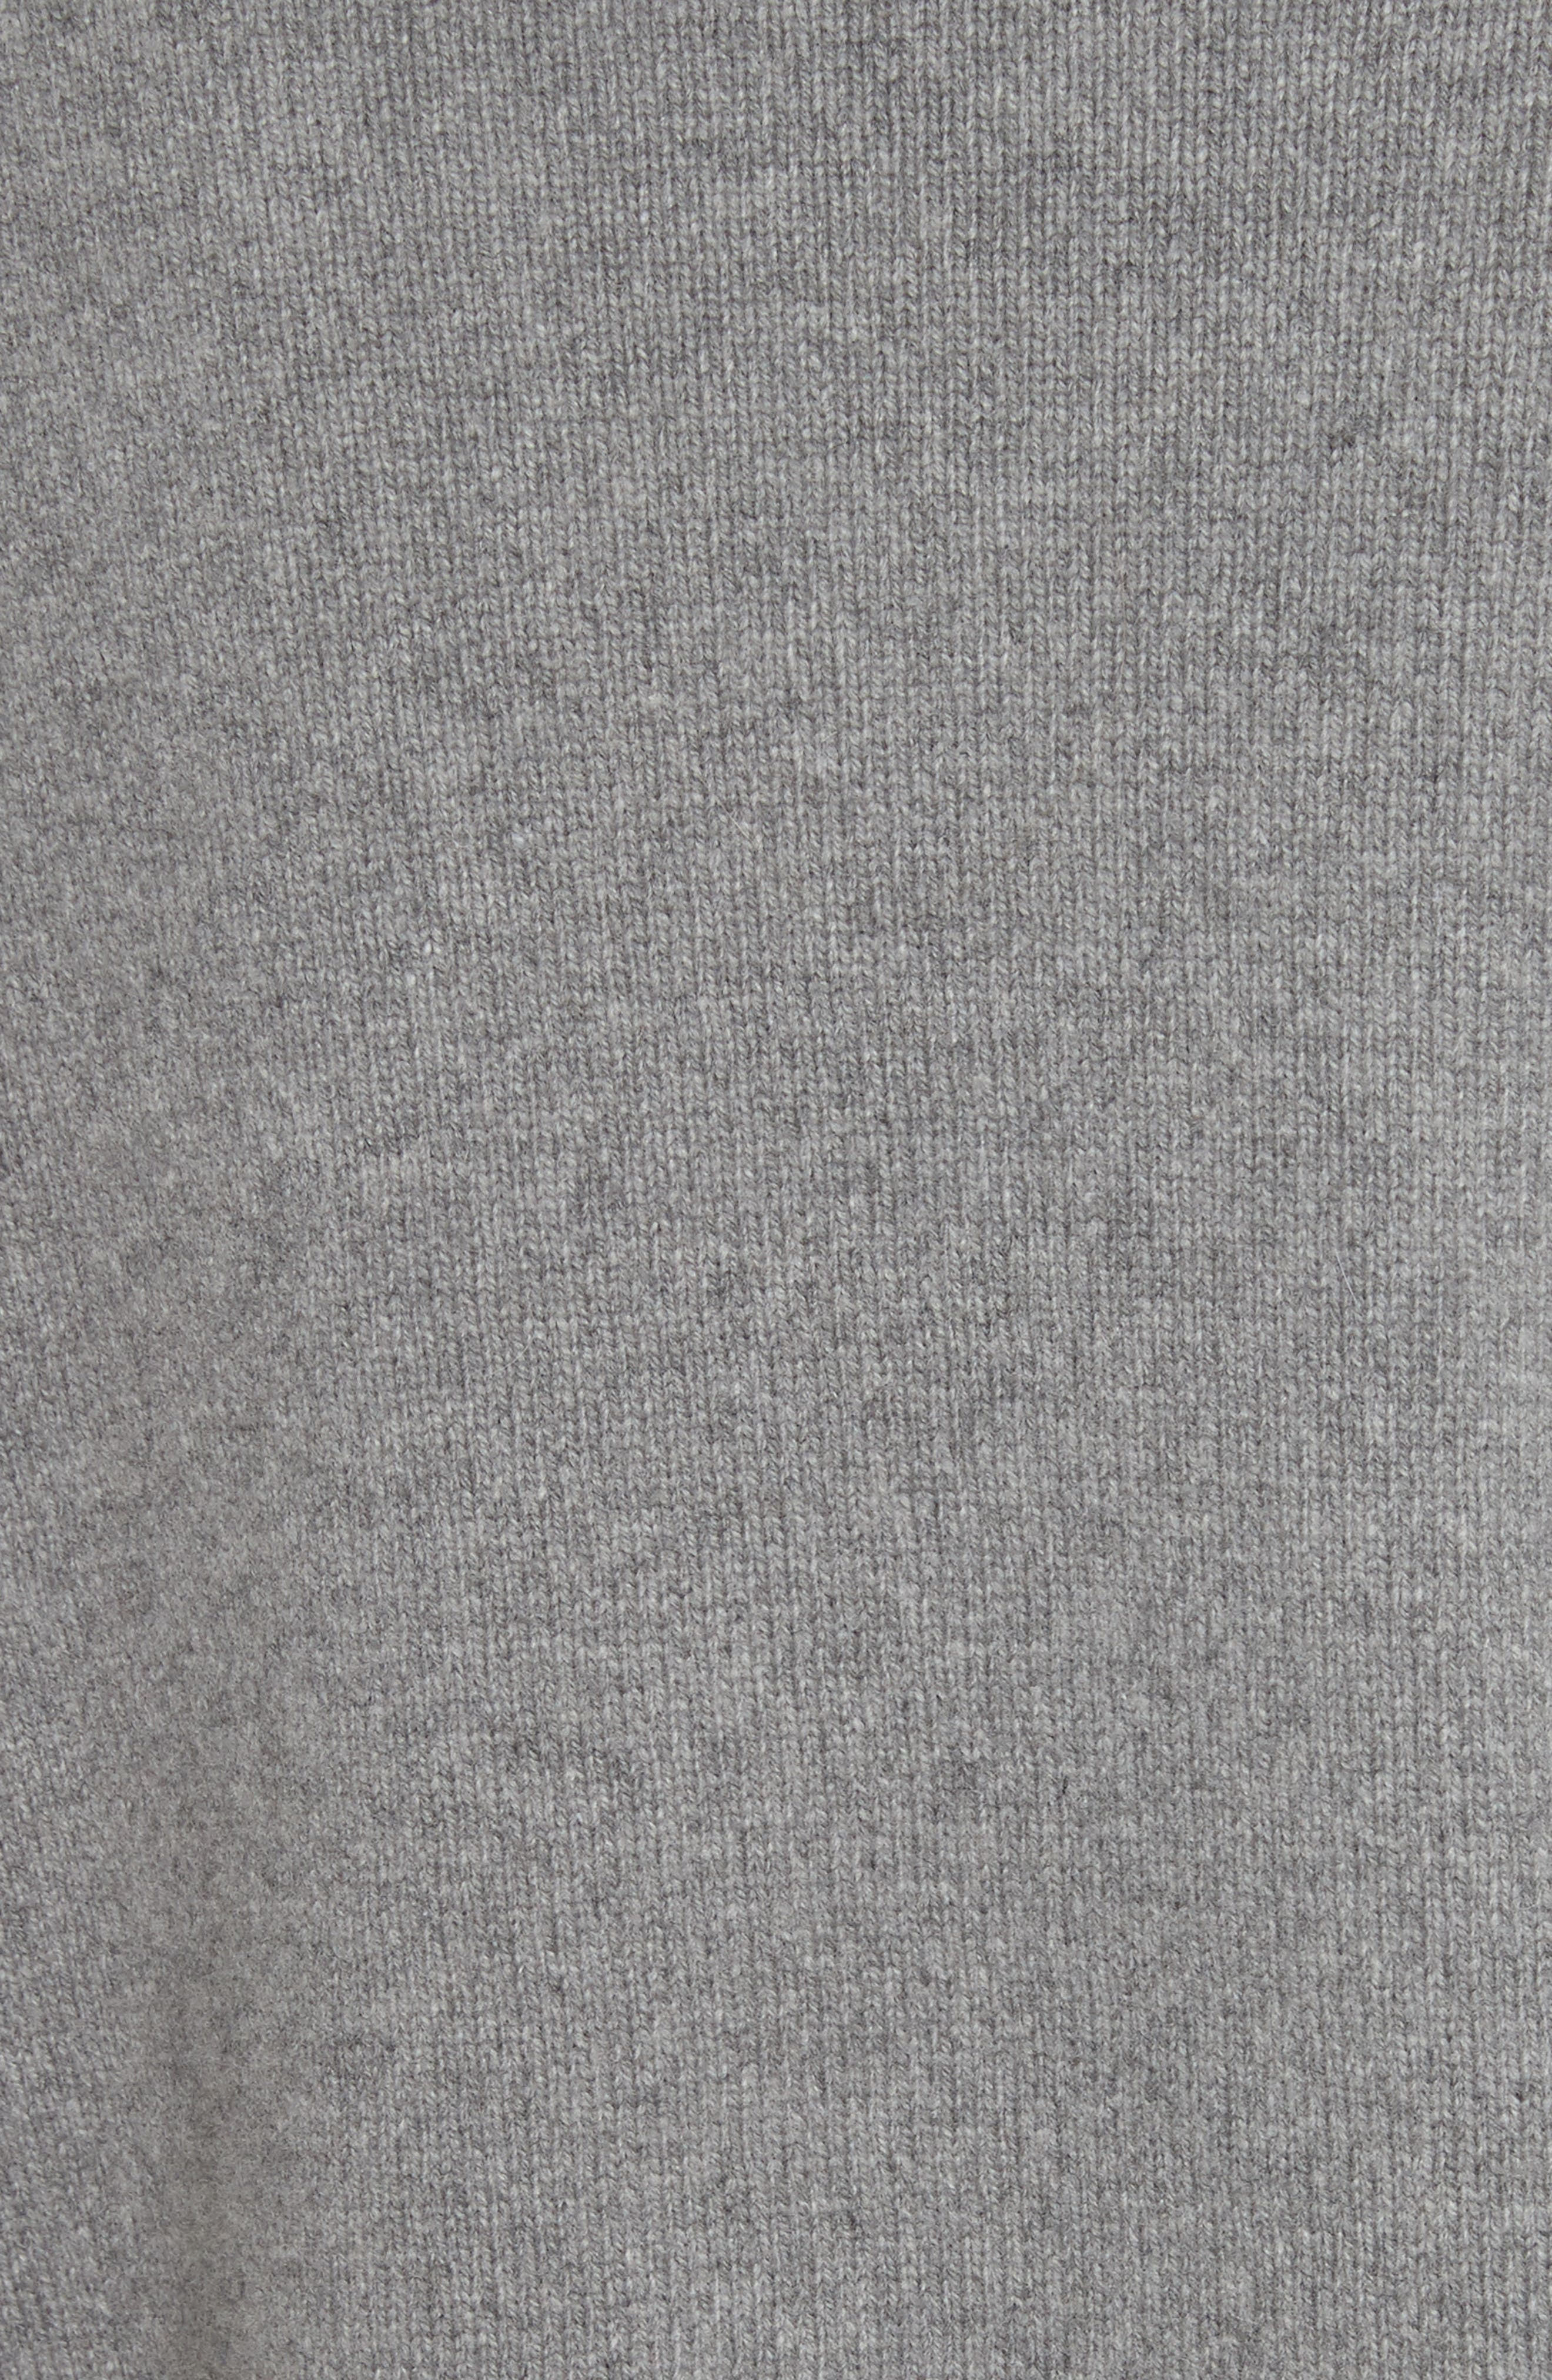 Heart Wool & Cashmere Sweater,                             Alternate thumbnail 5, color,                             Grey